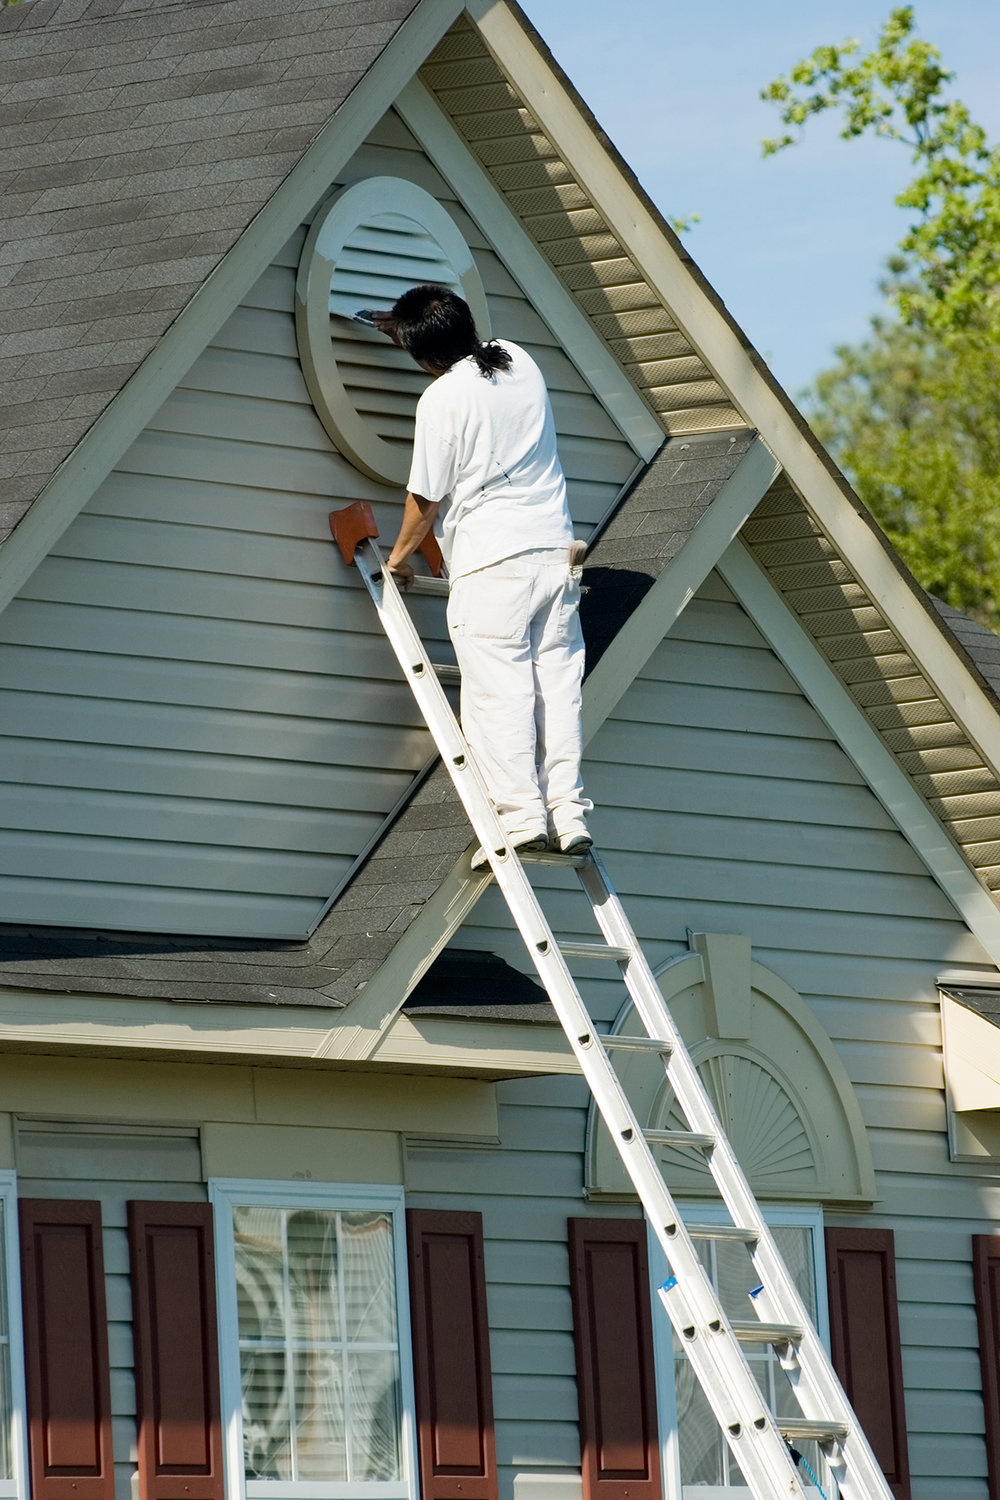 Painting your home will make it look as new and the investment lasts for years.